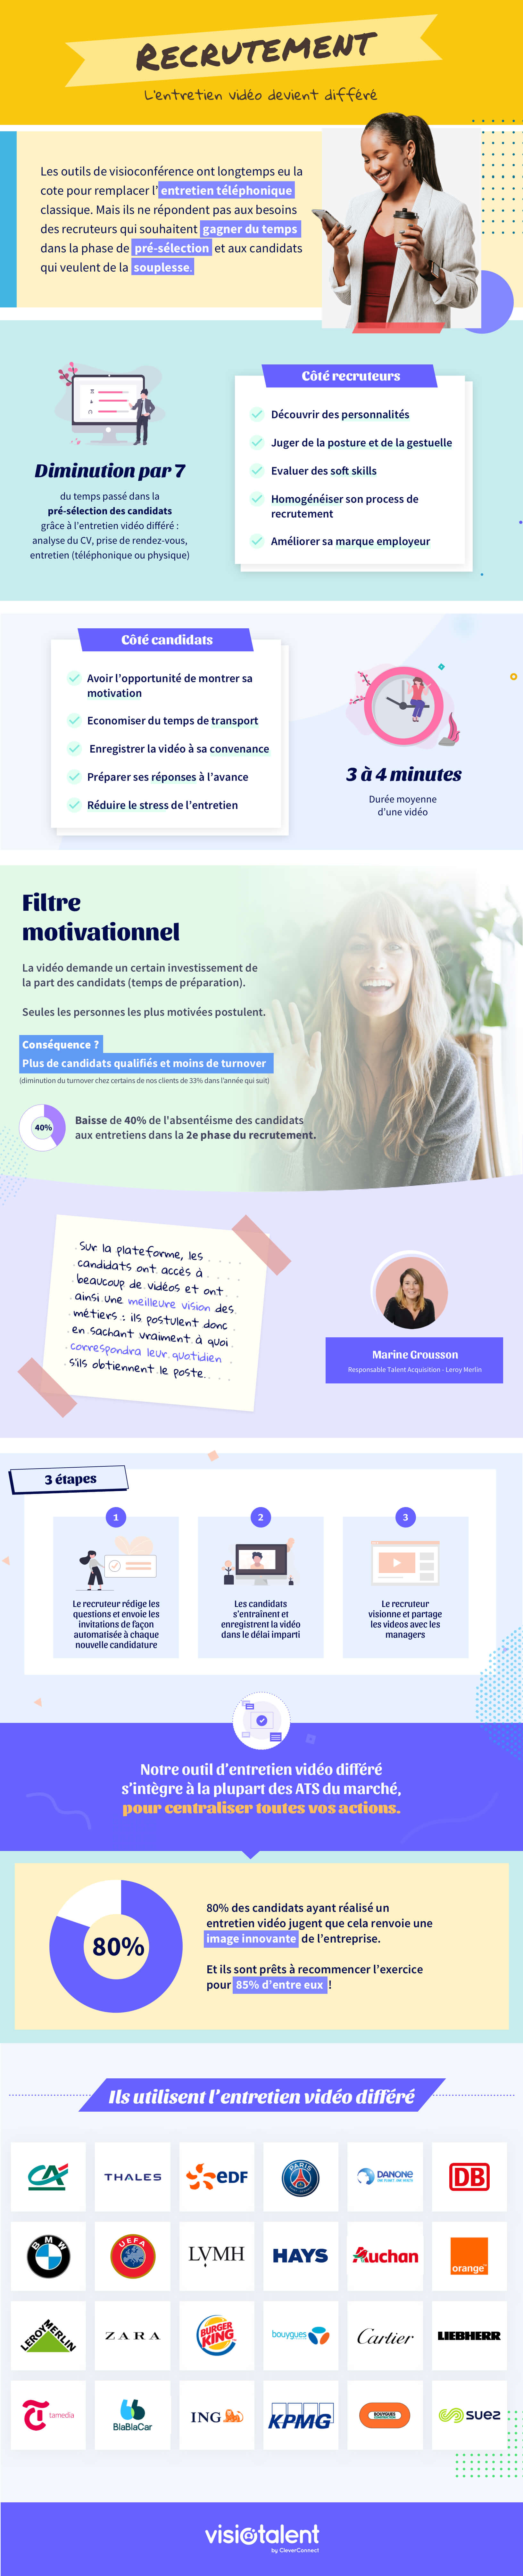 infographie-visiotalent-2020